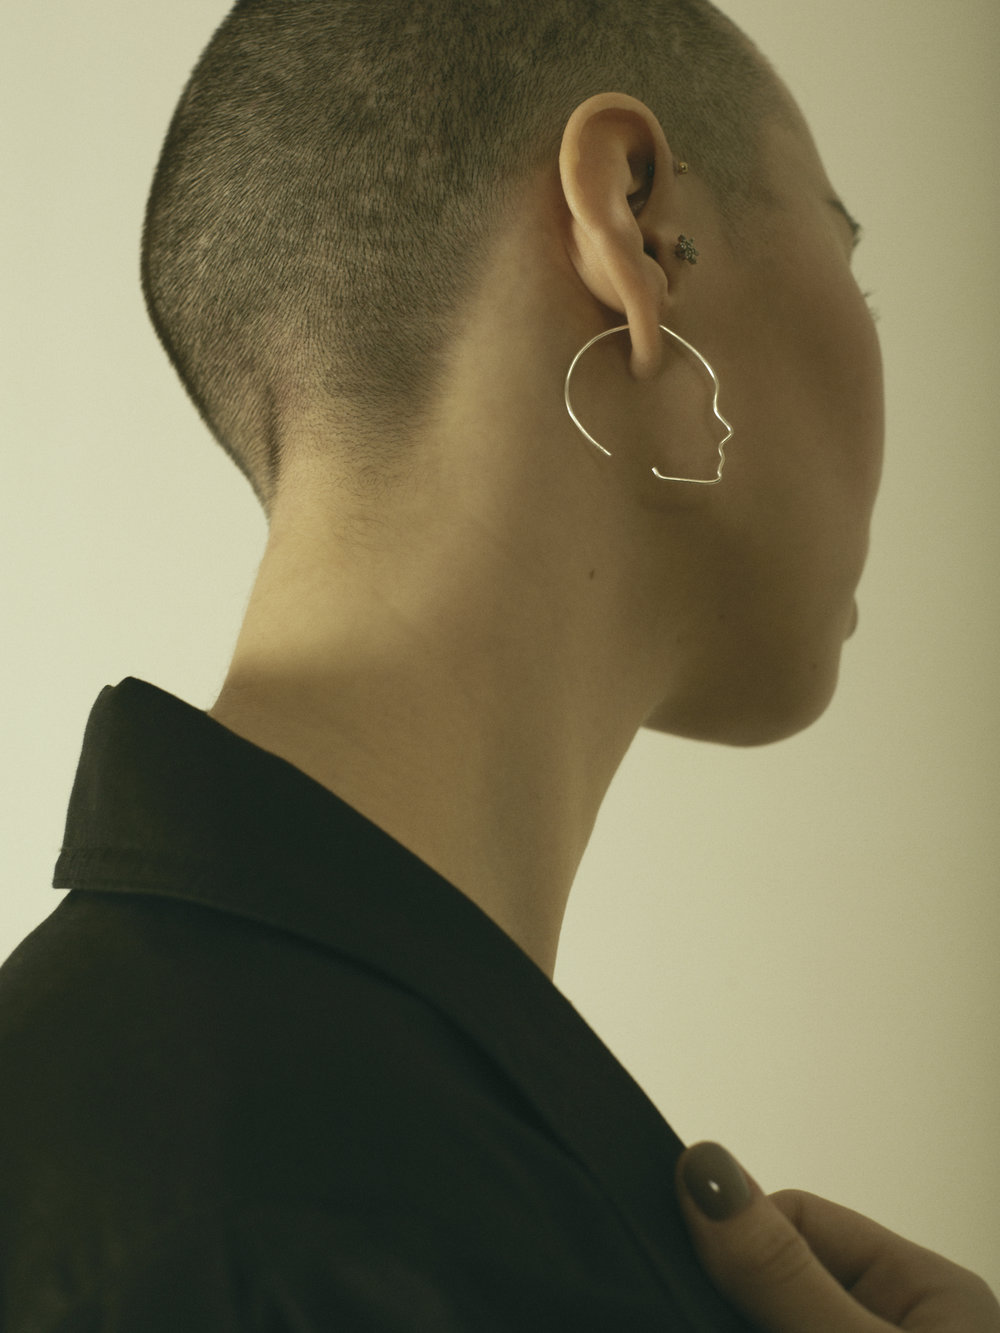 The contemporary jewelry brand Die motte